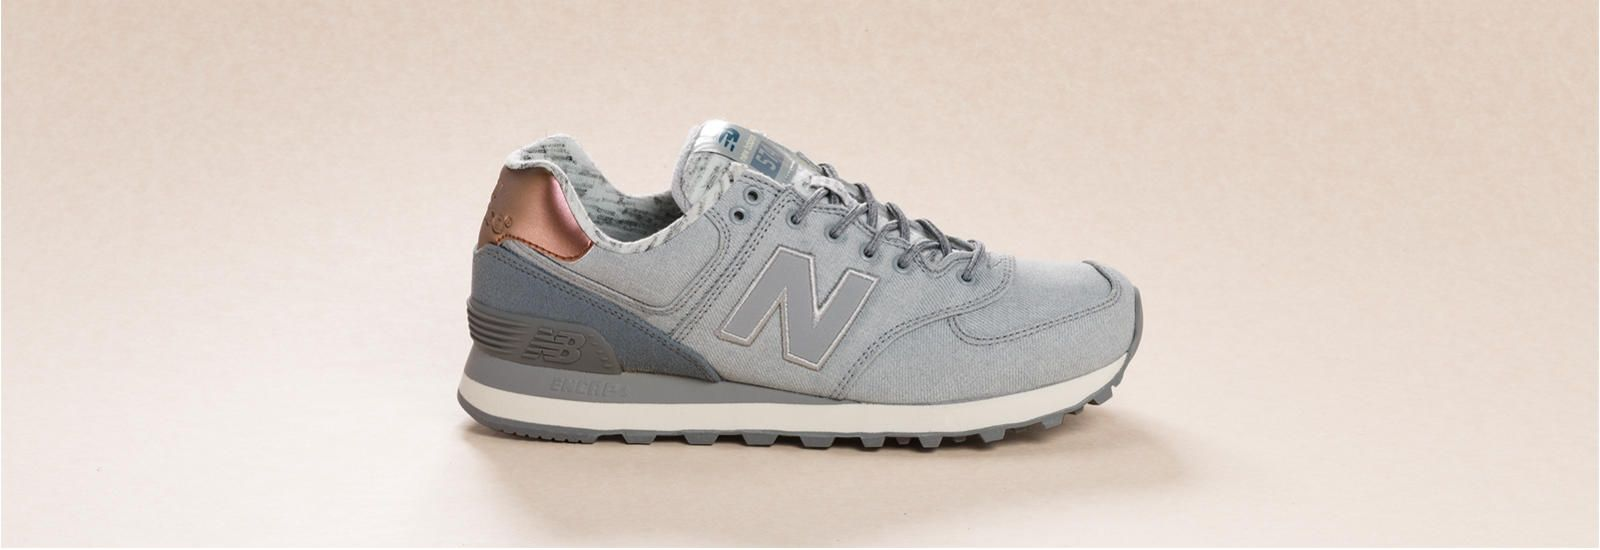 new balance rose gold and silver